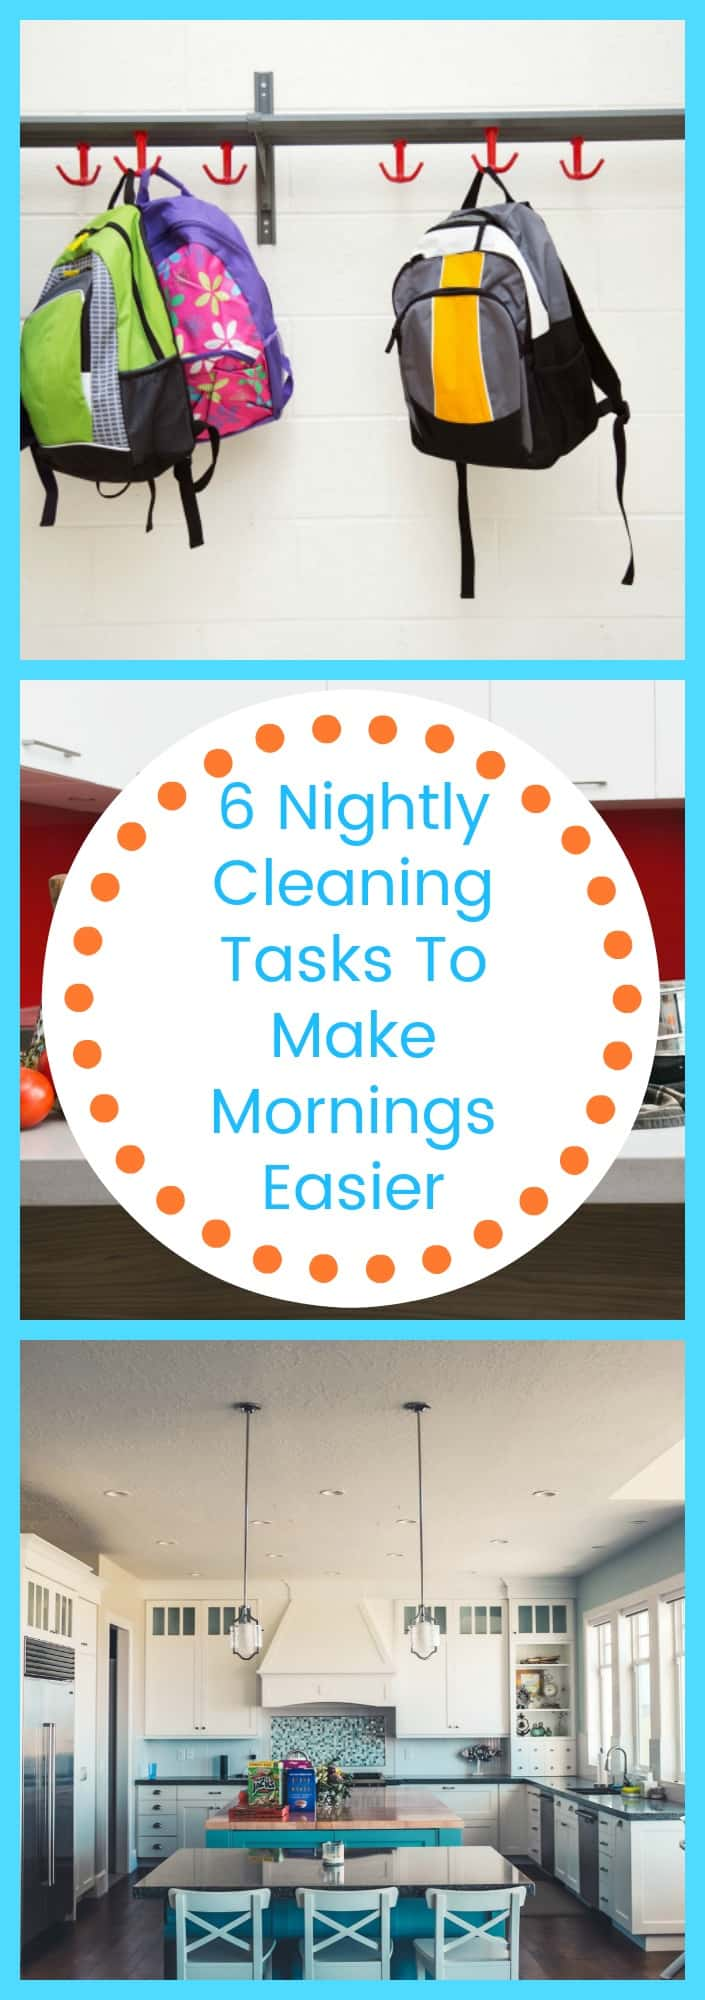 Cleaning--6 Nightly Cleaning Tasks to Make Mornings Easier--The Organized Mom